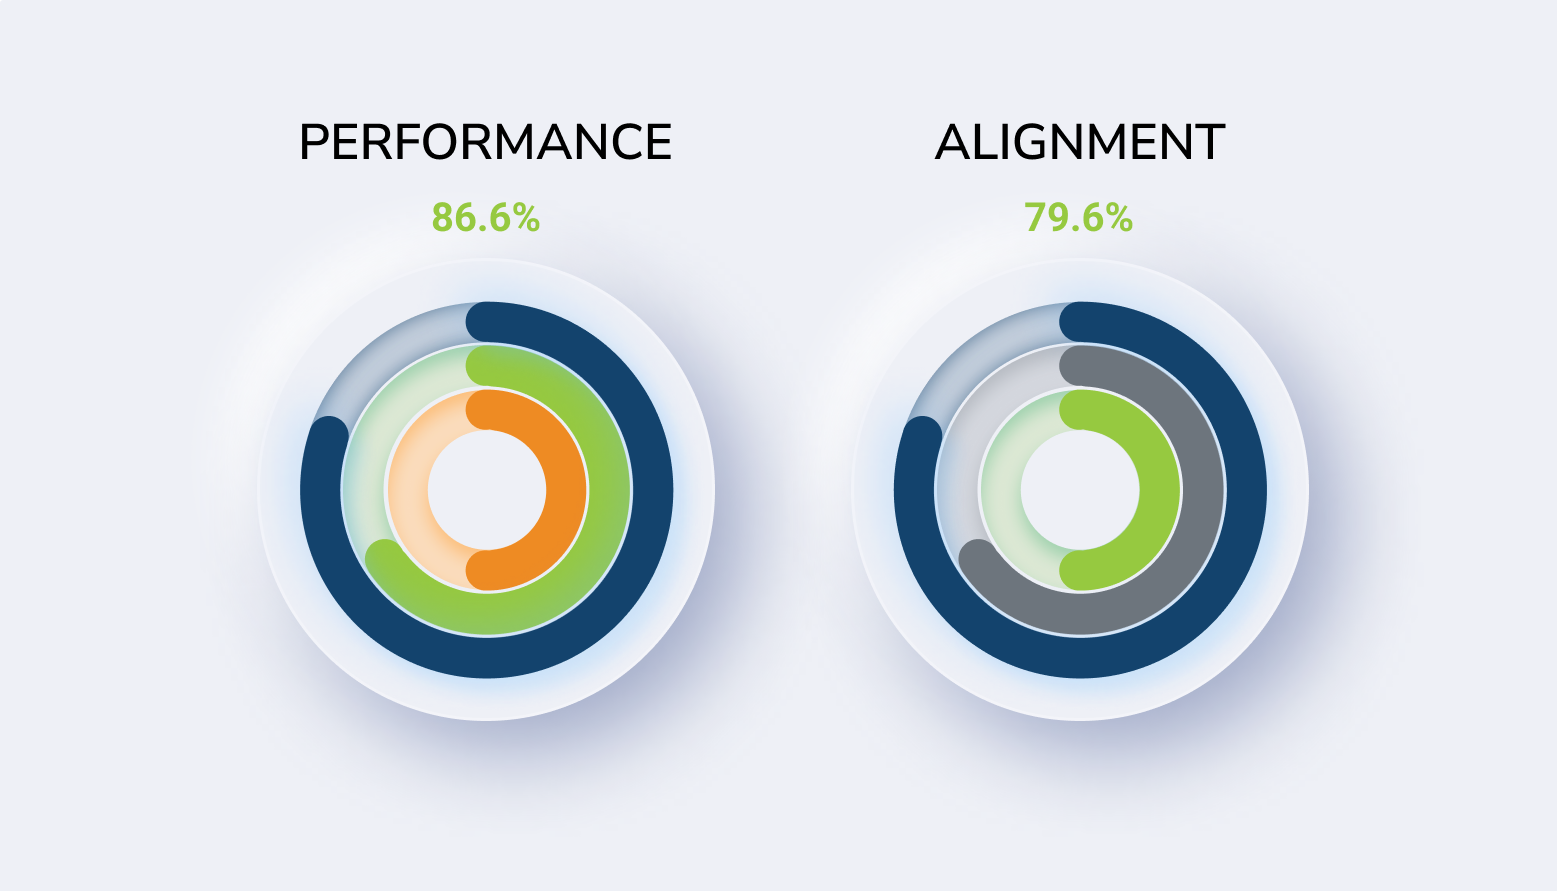 Performance and alignment